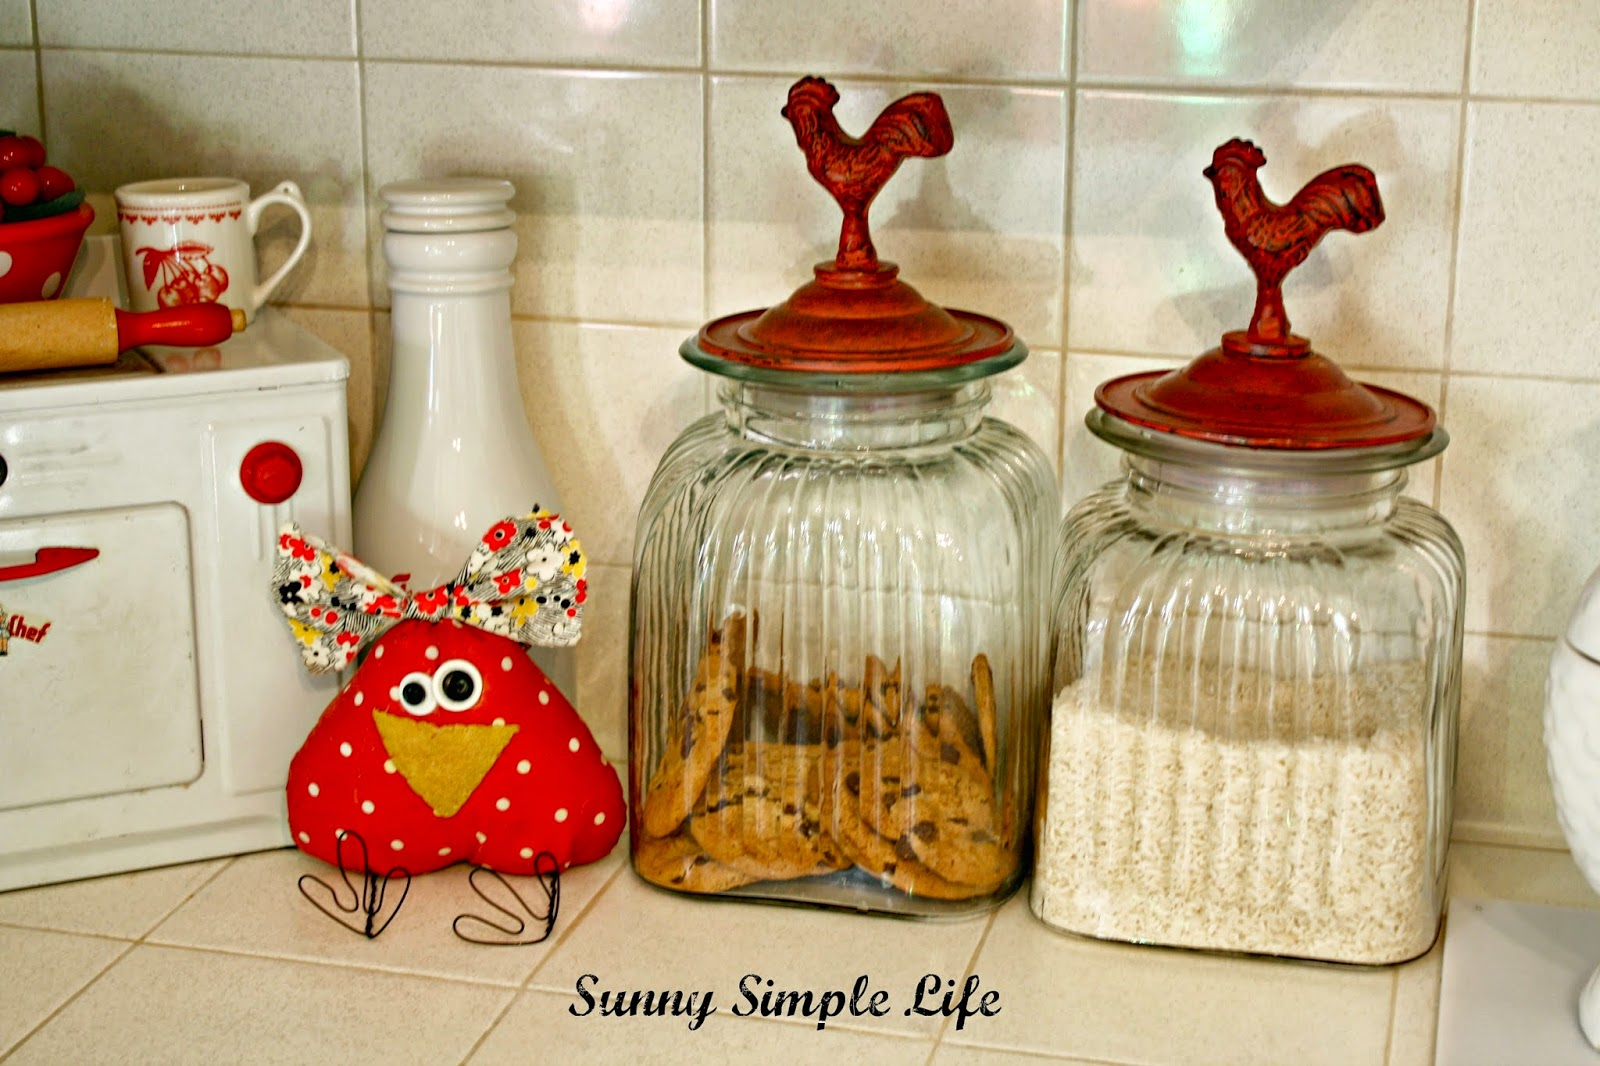 Sunny simple life chickens in kitchen decor for Decor for kitchen